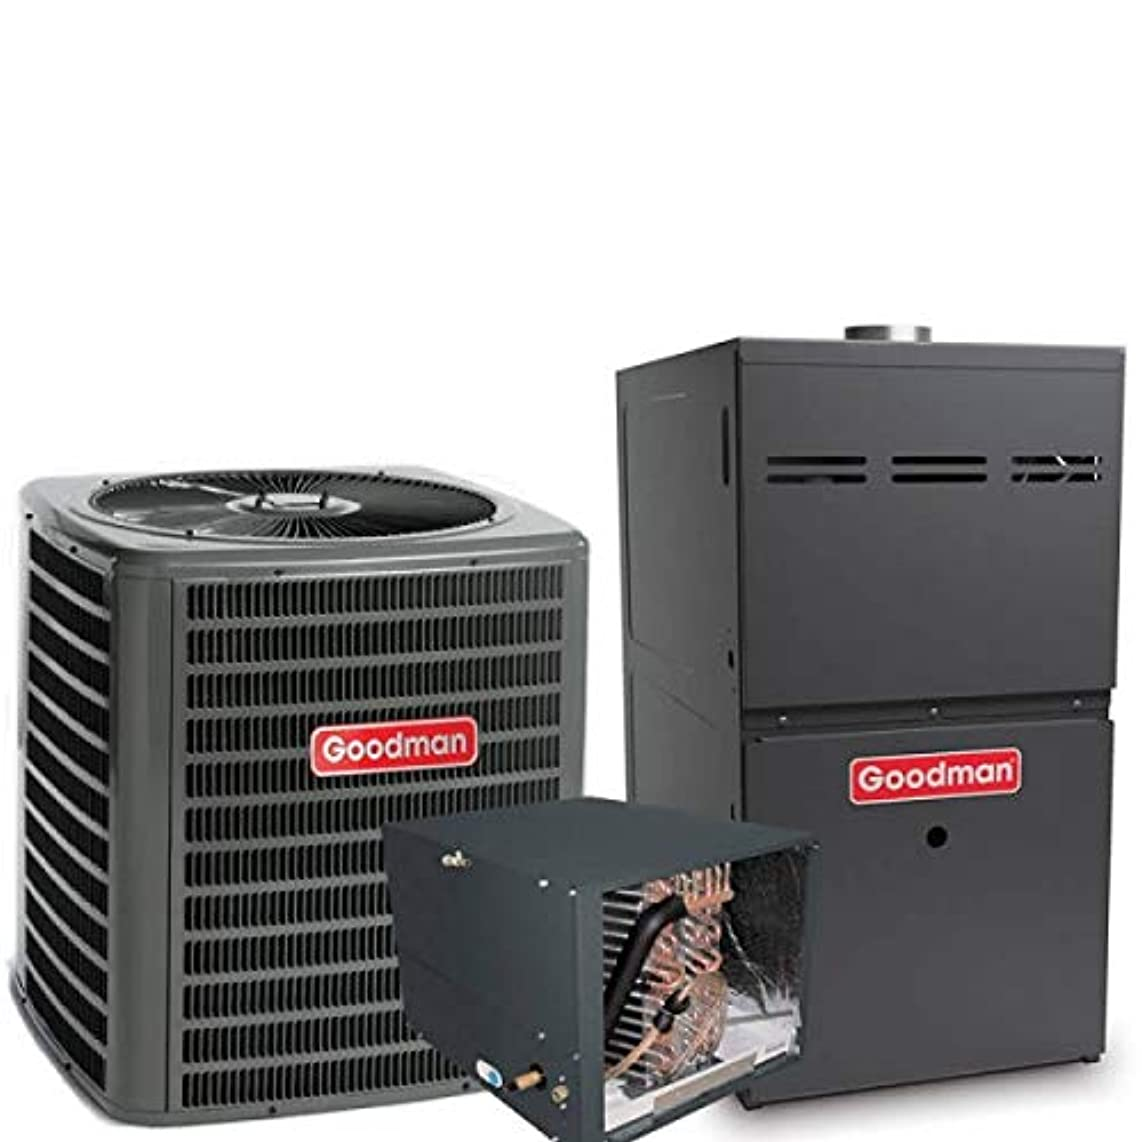 3 Ton Goodman 14.5 SEER R410A 96% AFUE 80,000 BTU Two-Stage Variable Speed Horizontal Gas Furnace Split System - Yes, add one to my order.